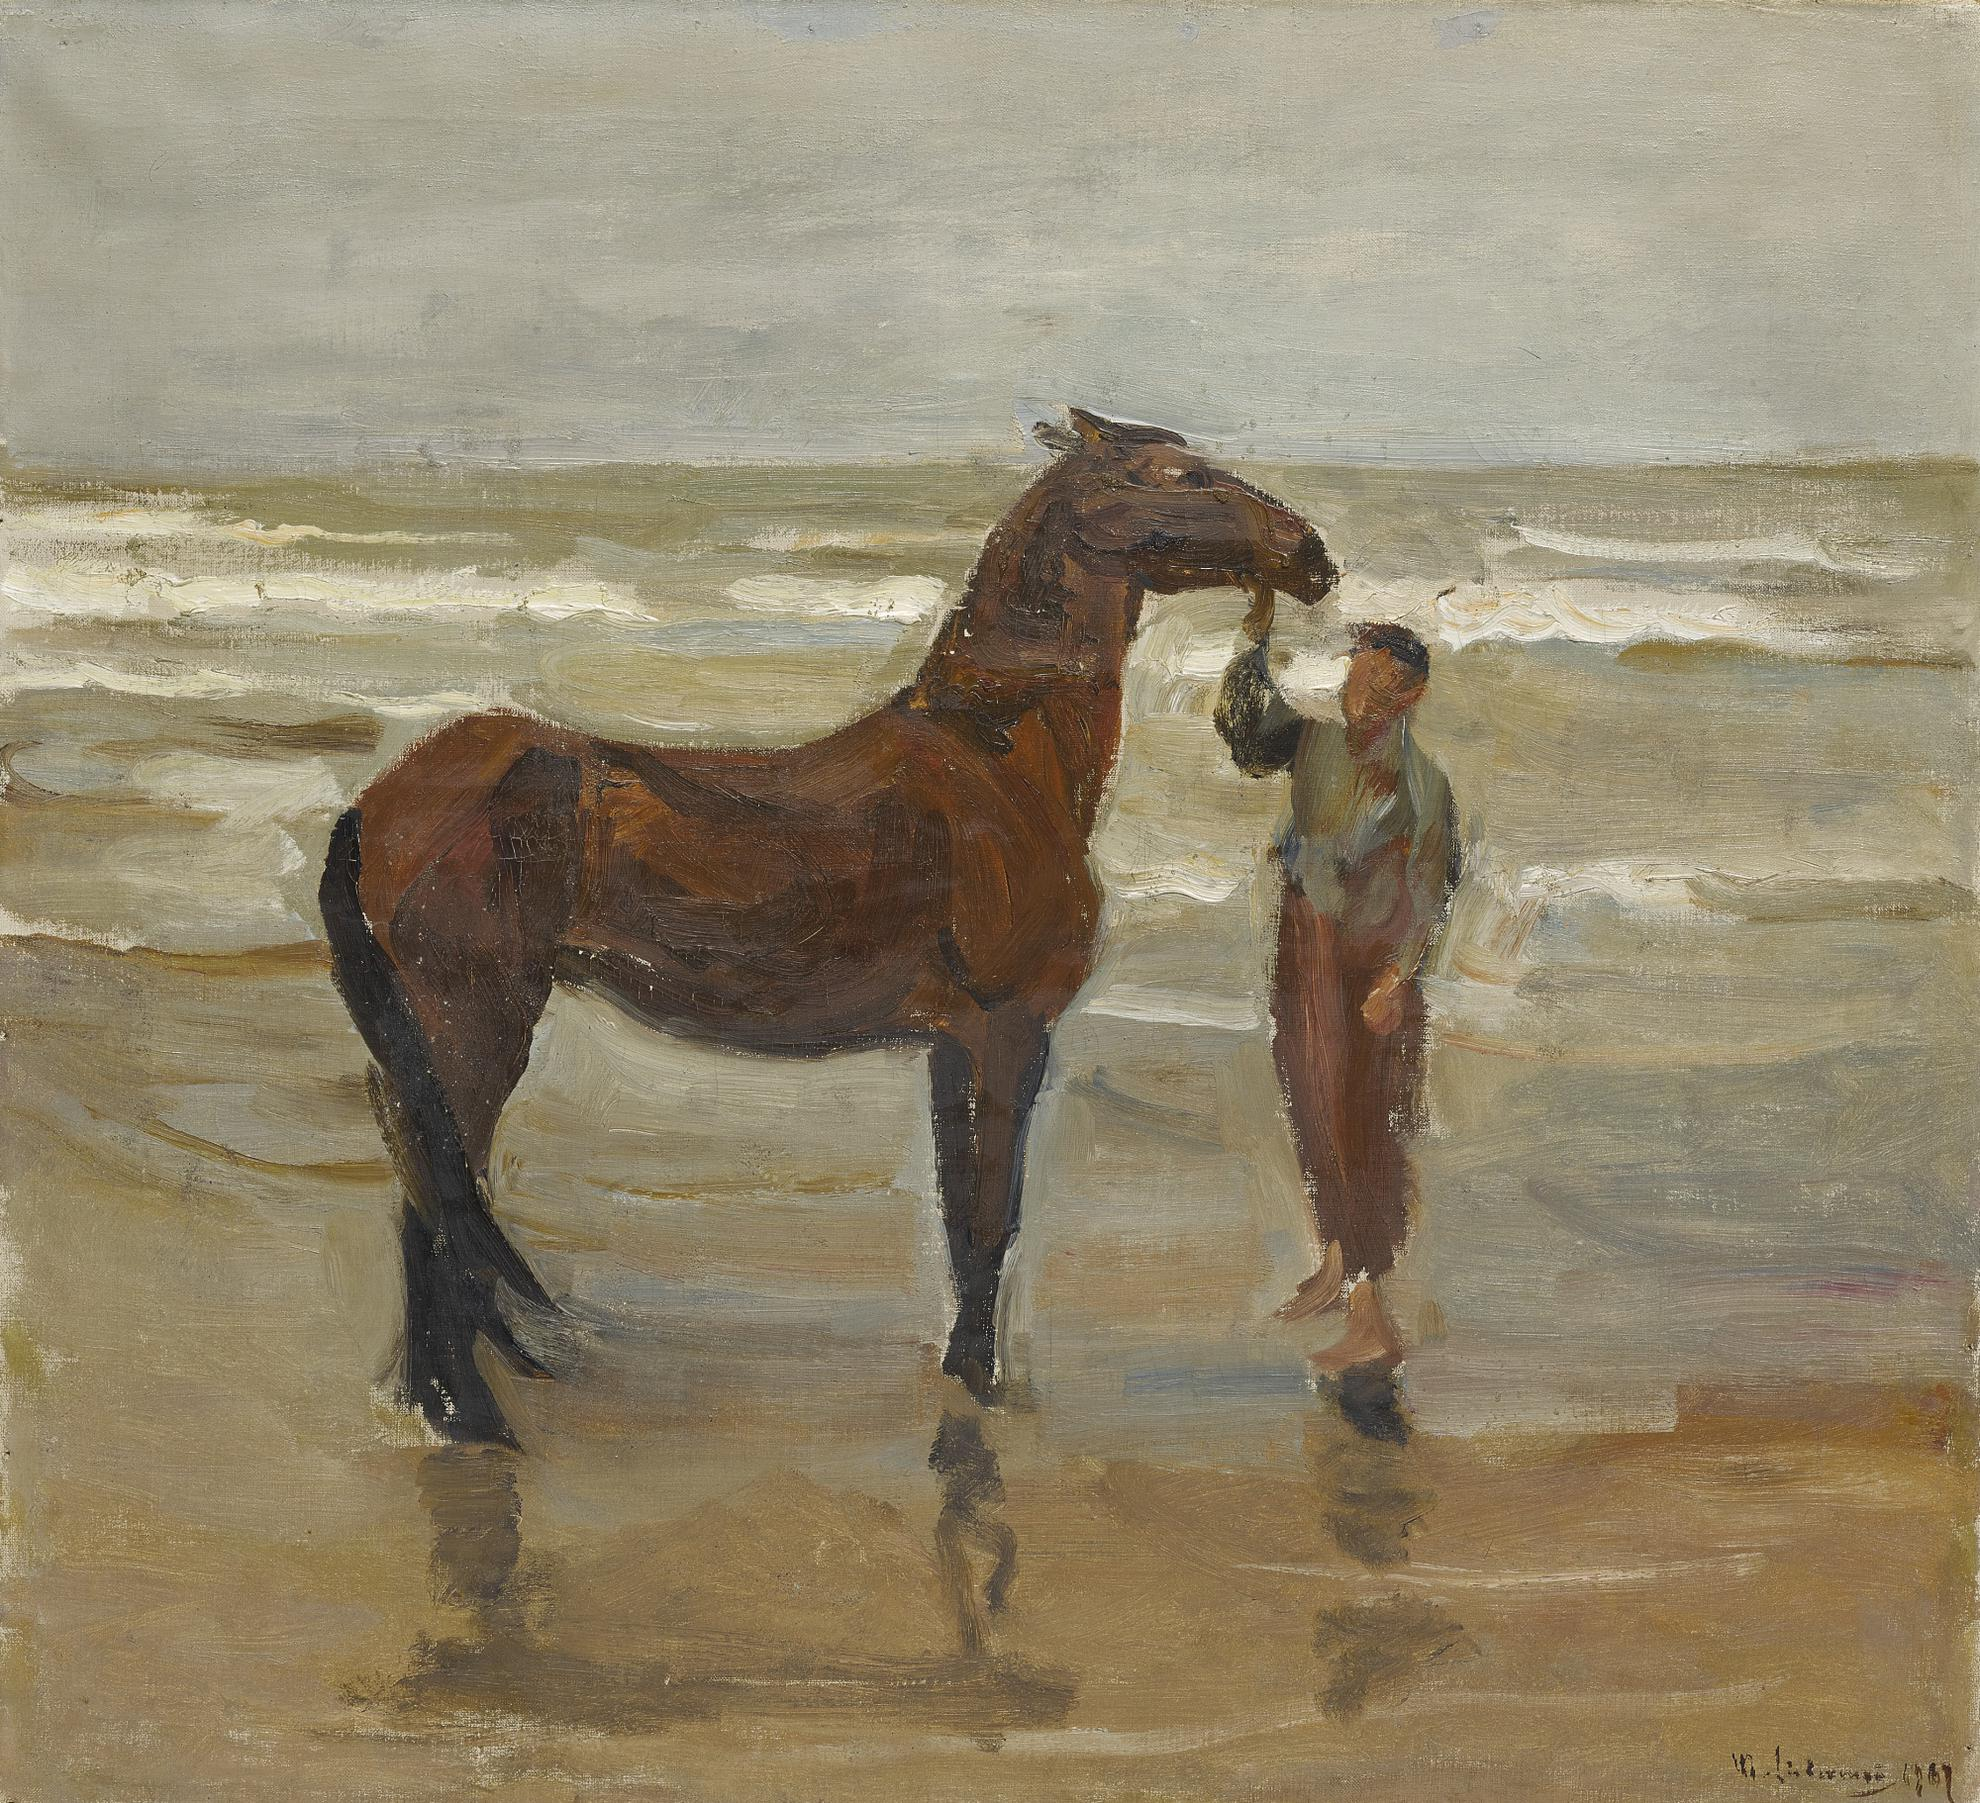 Max Liebermann-Junge Mit Pferd Am Strande (Boy With Horse On The Beach)-1907